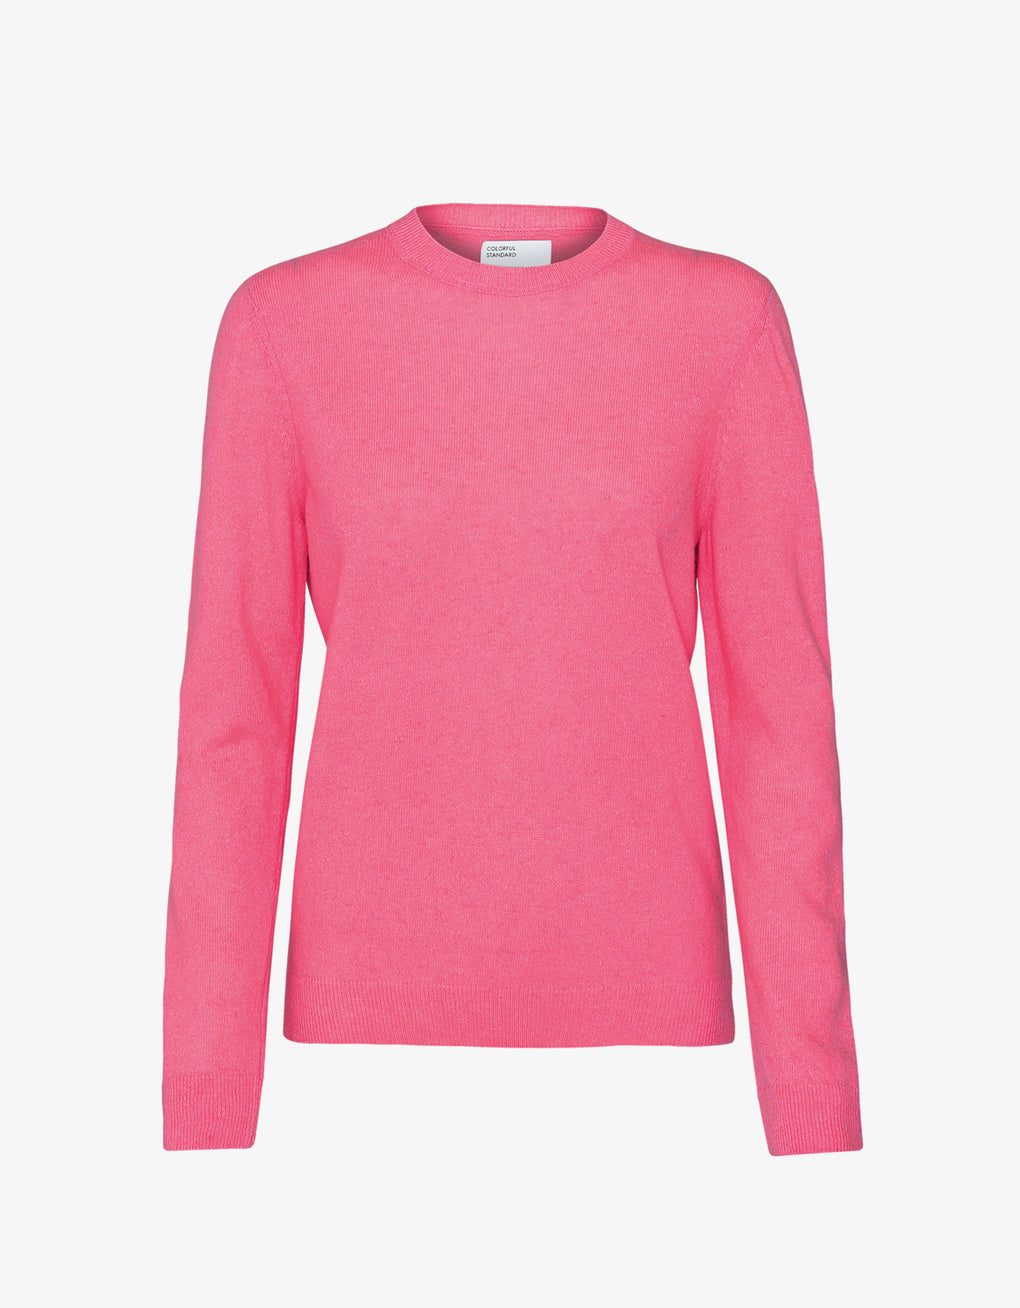 Colorful Standard Women Light Merino Wool Crew Women Merino Crewneck Bubblegum Pink